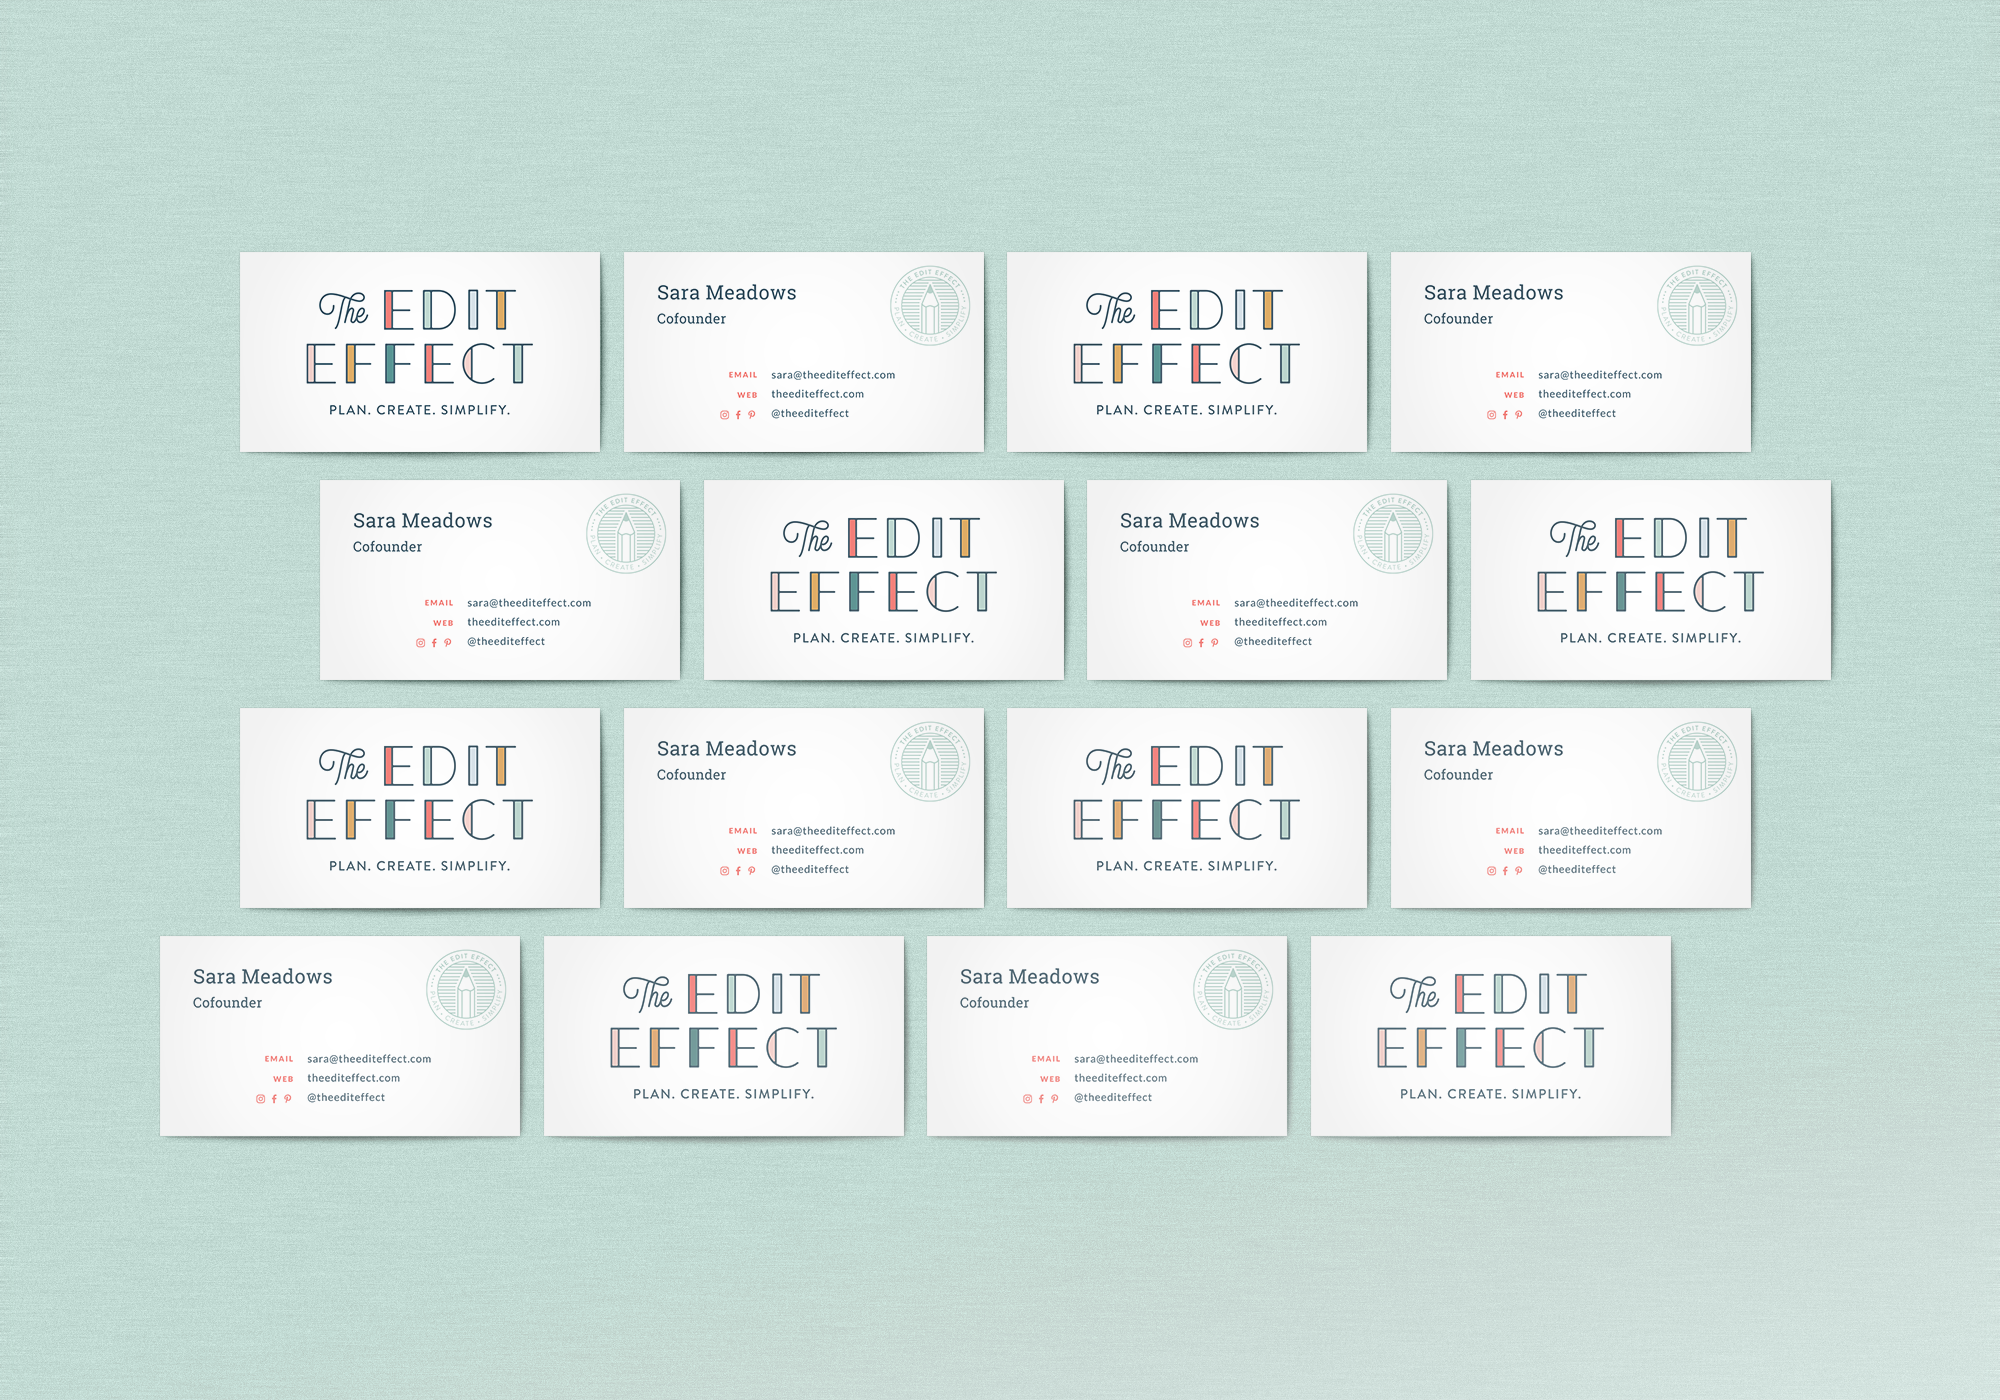 TheEditEffect_Mockup_7.png